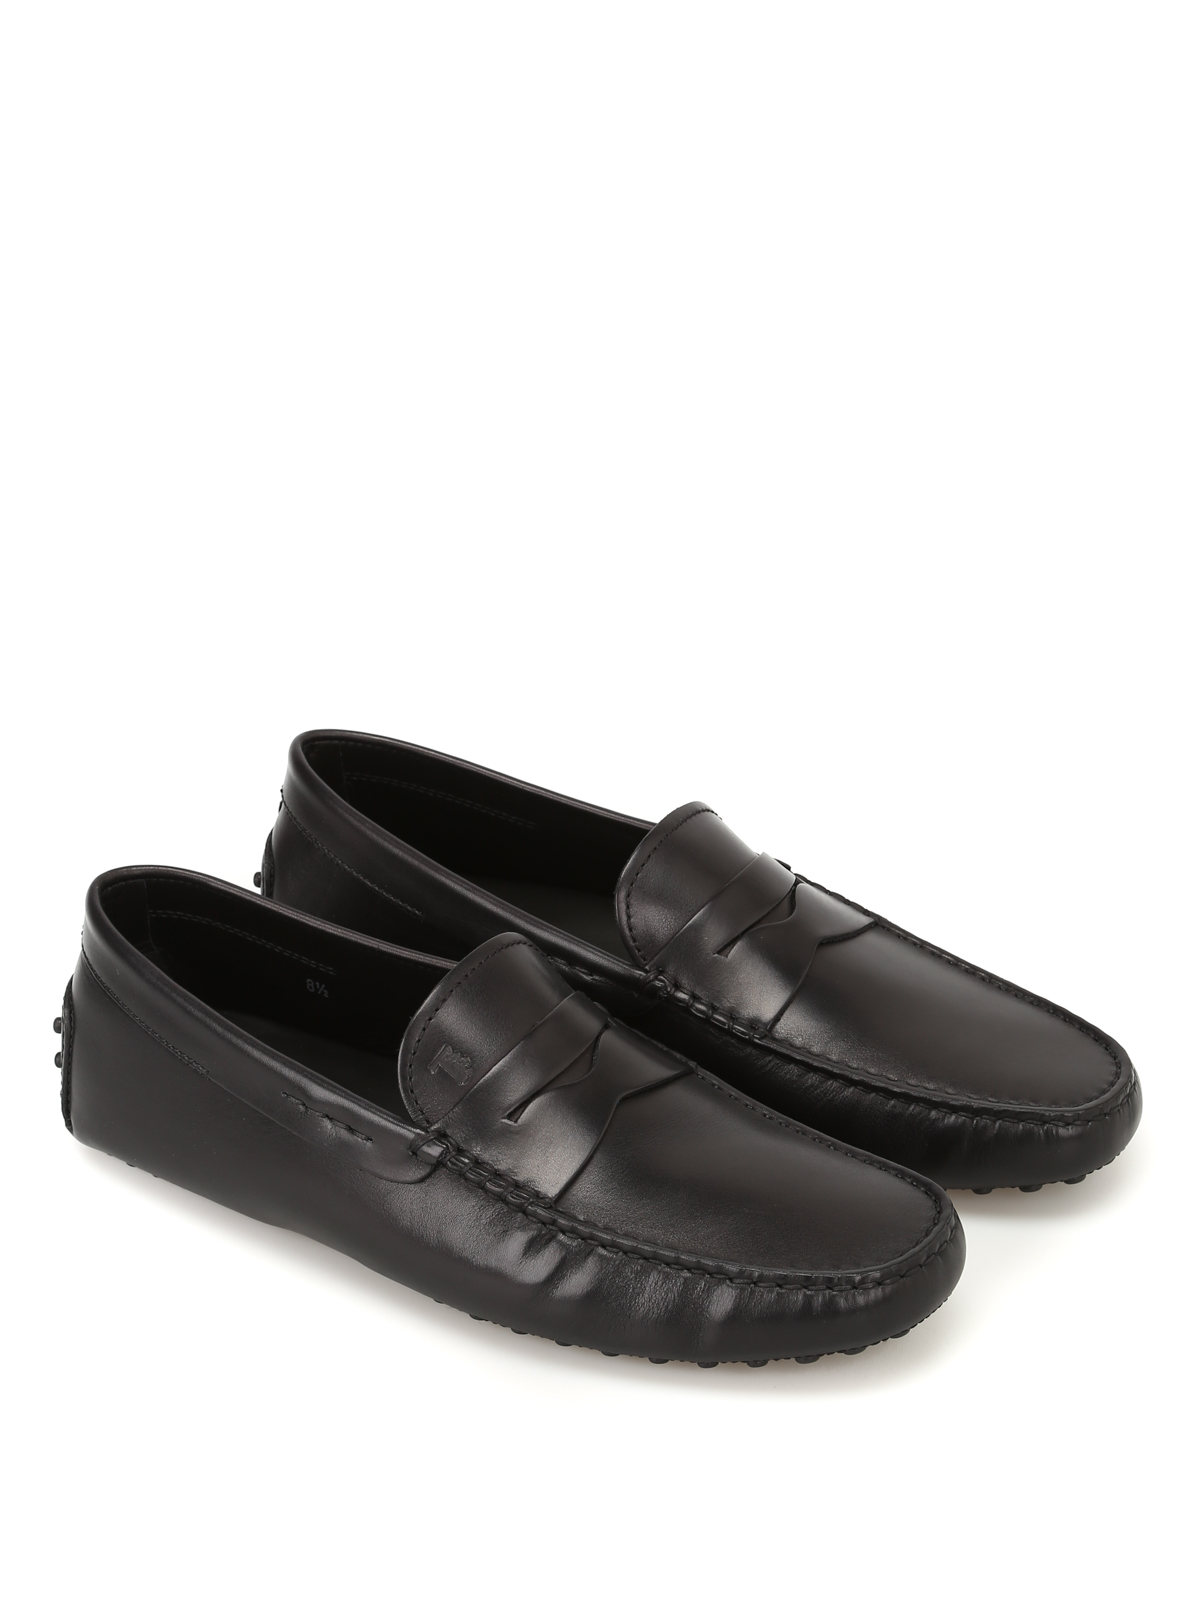 59782ff34a5 Tod S - Gommino black leather driving shoes - Loafers   Slippers ...